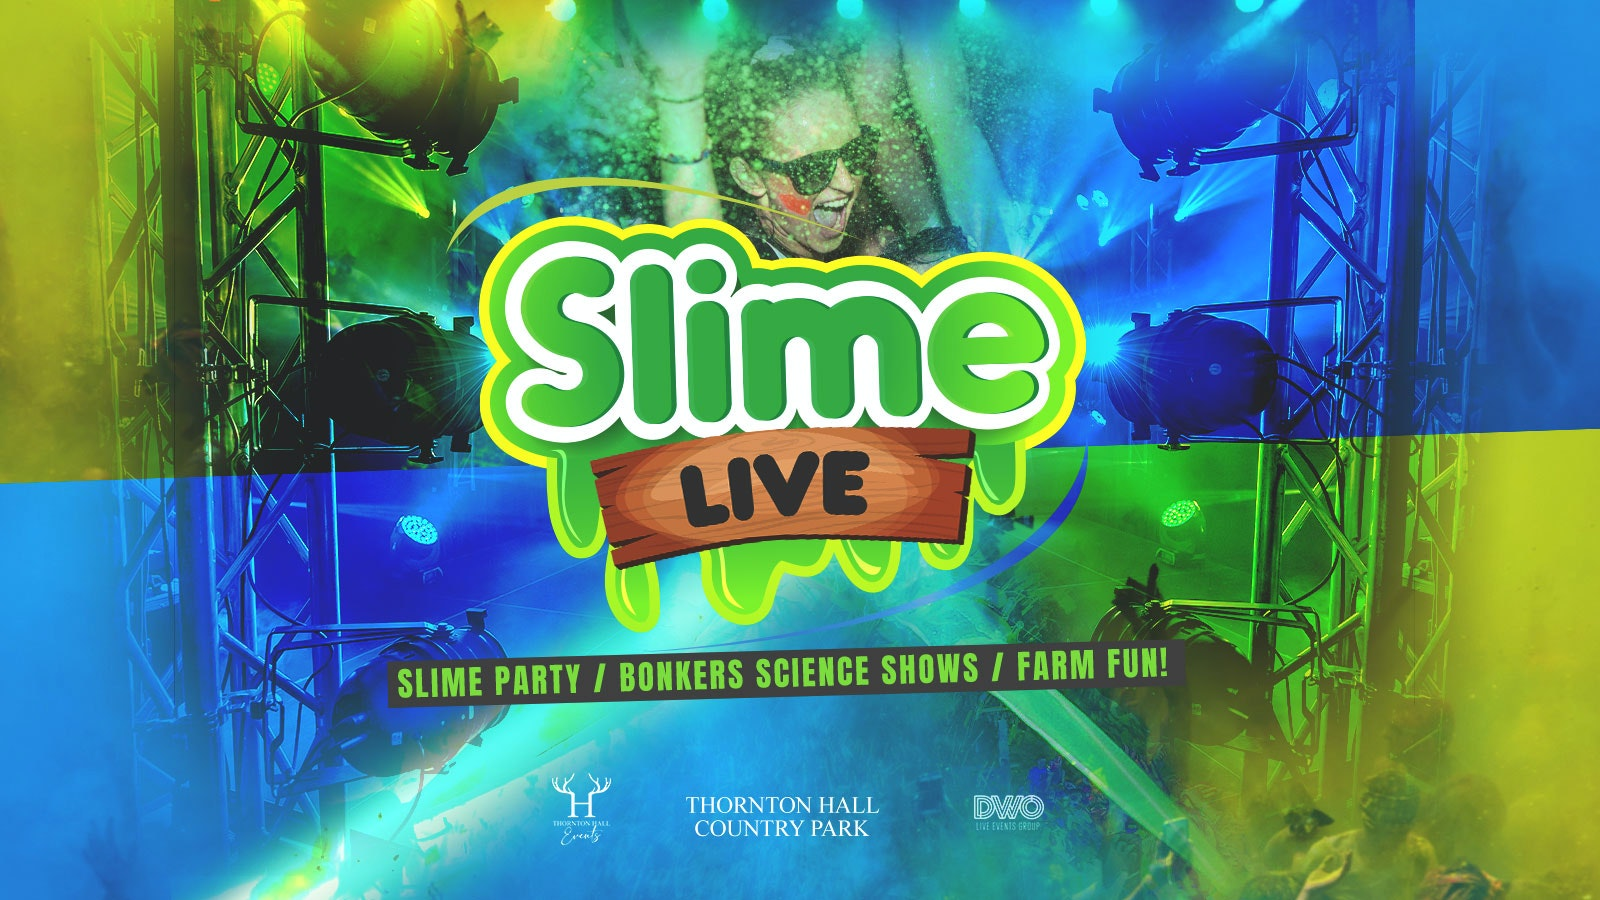 Slime Live (including Farm Park Entry) – Friday 20th August – All Day Ticket